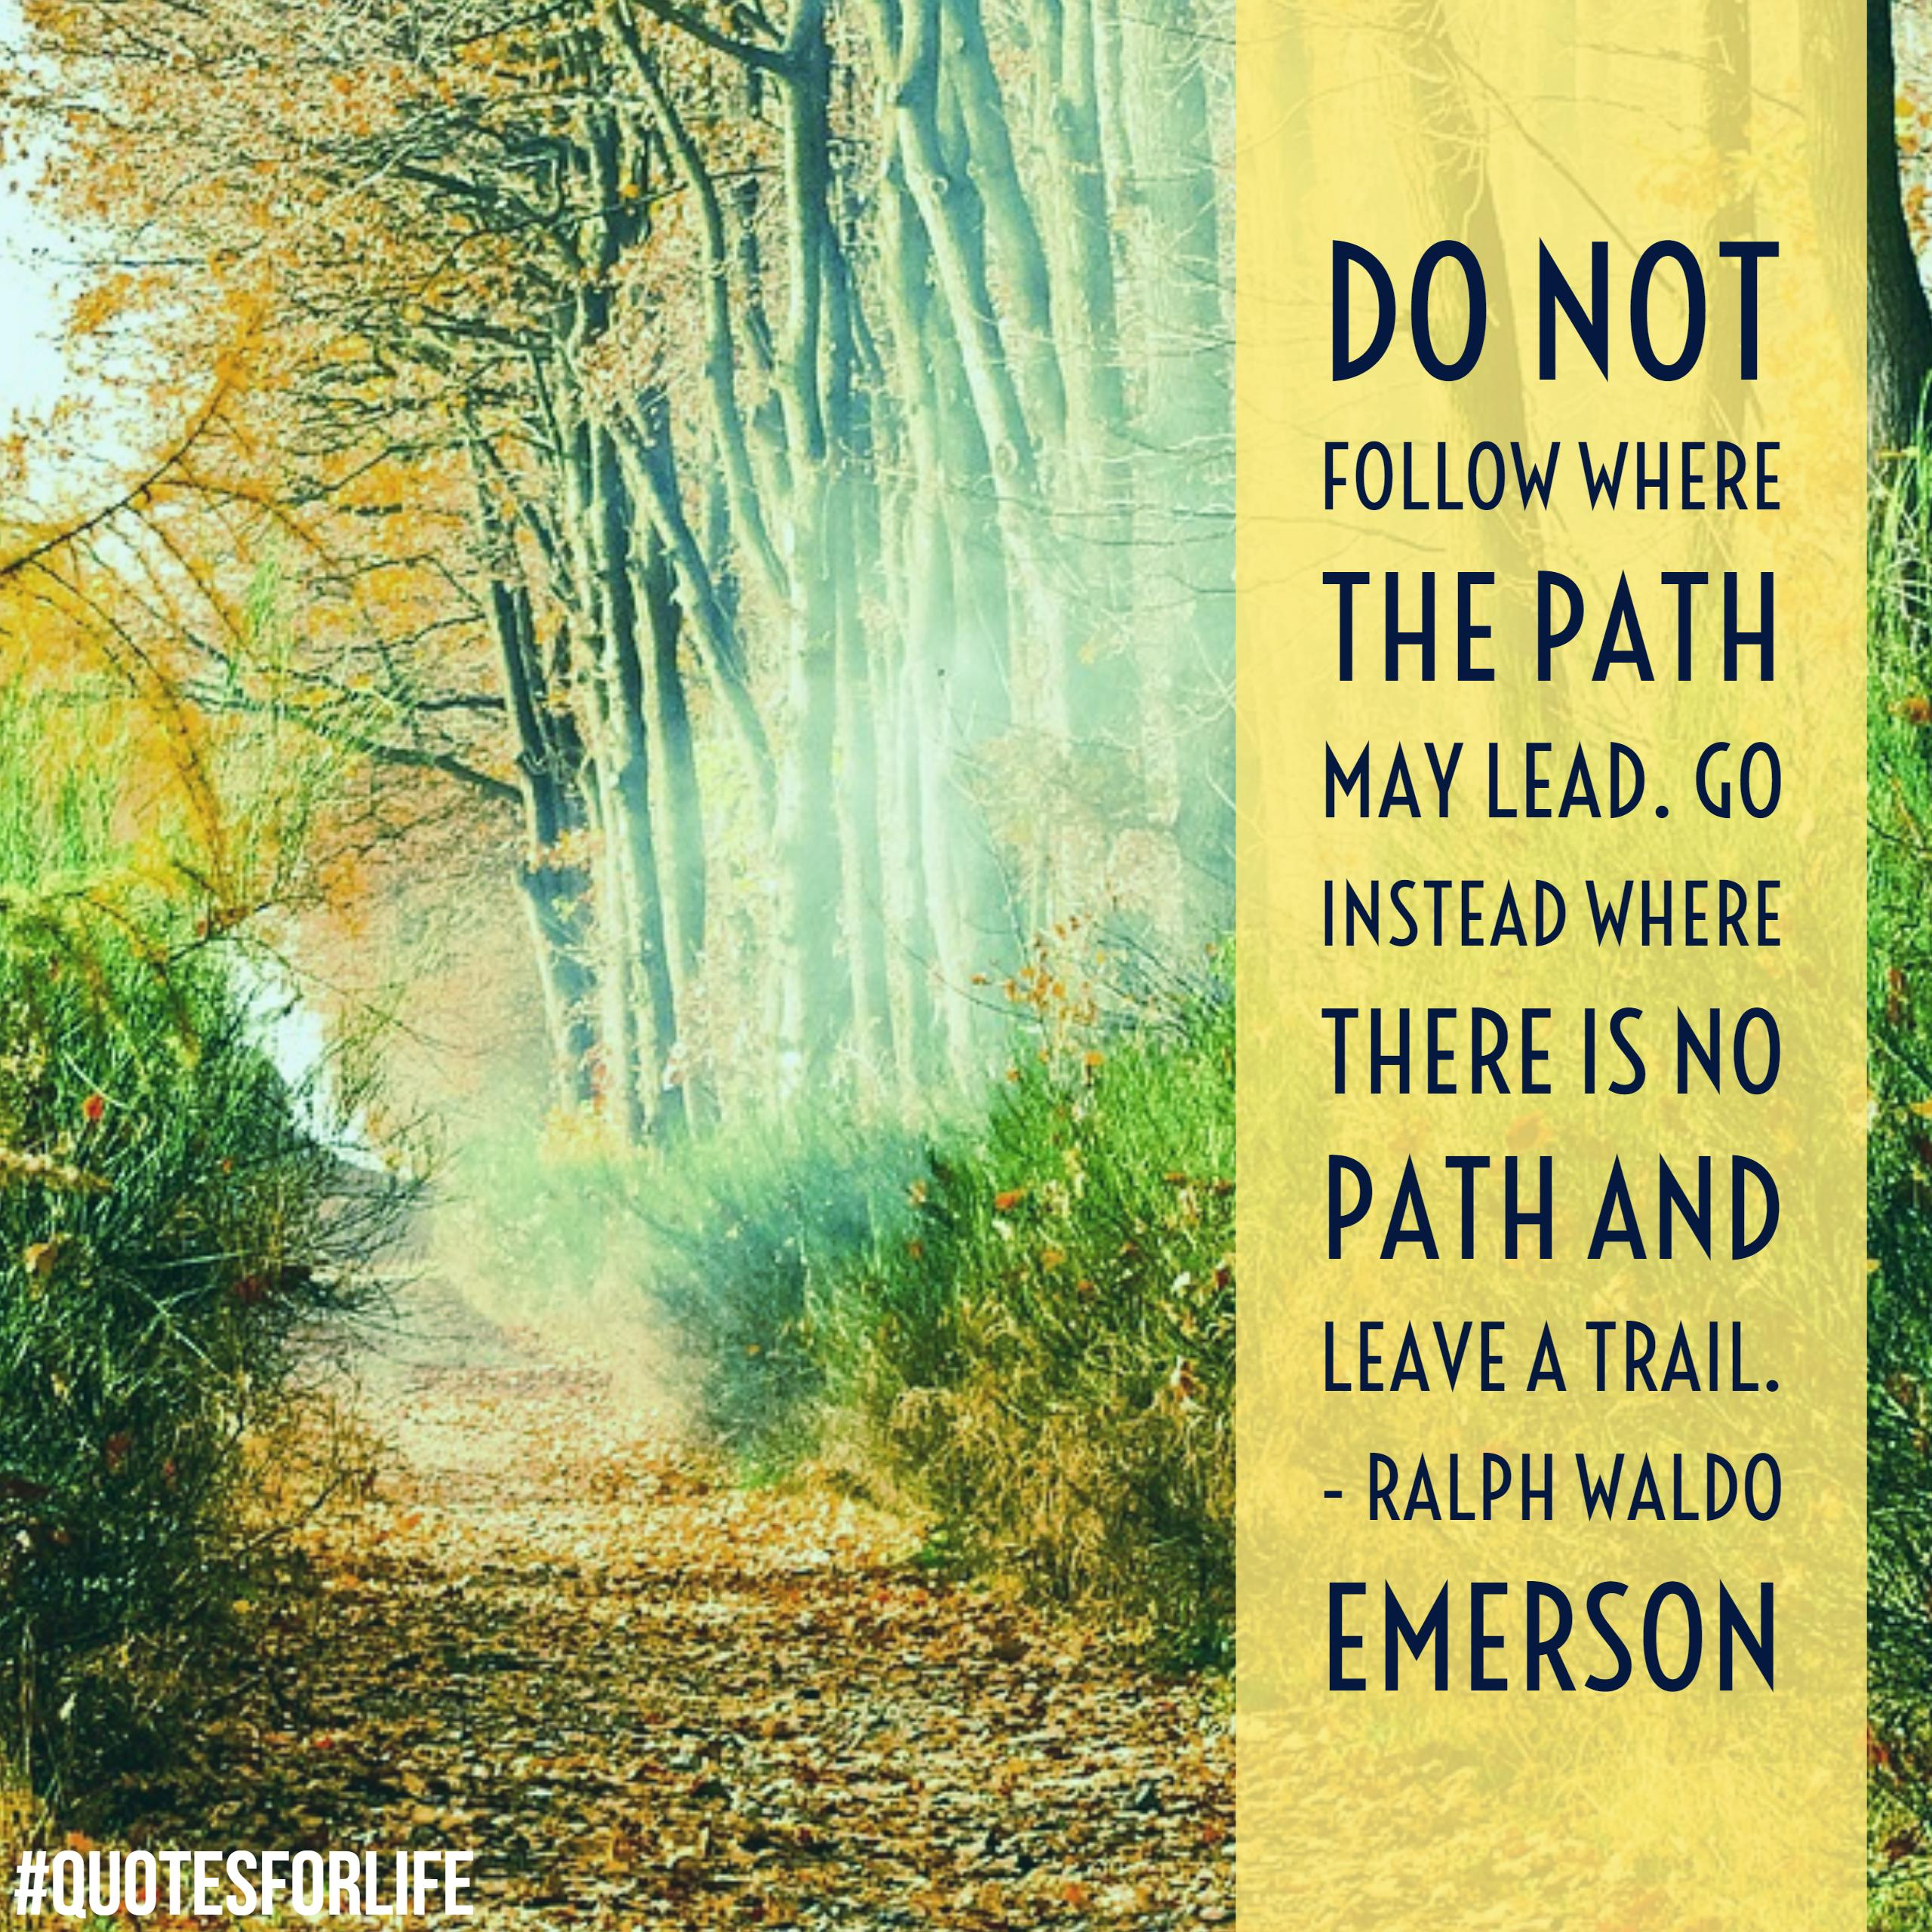 ralph waldo emerson quotes do not follow where the path lead go instead where there is no path and leave a trail ralph waldo emerson